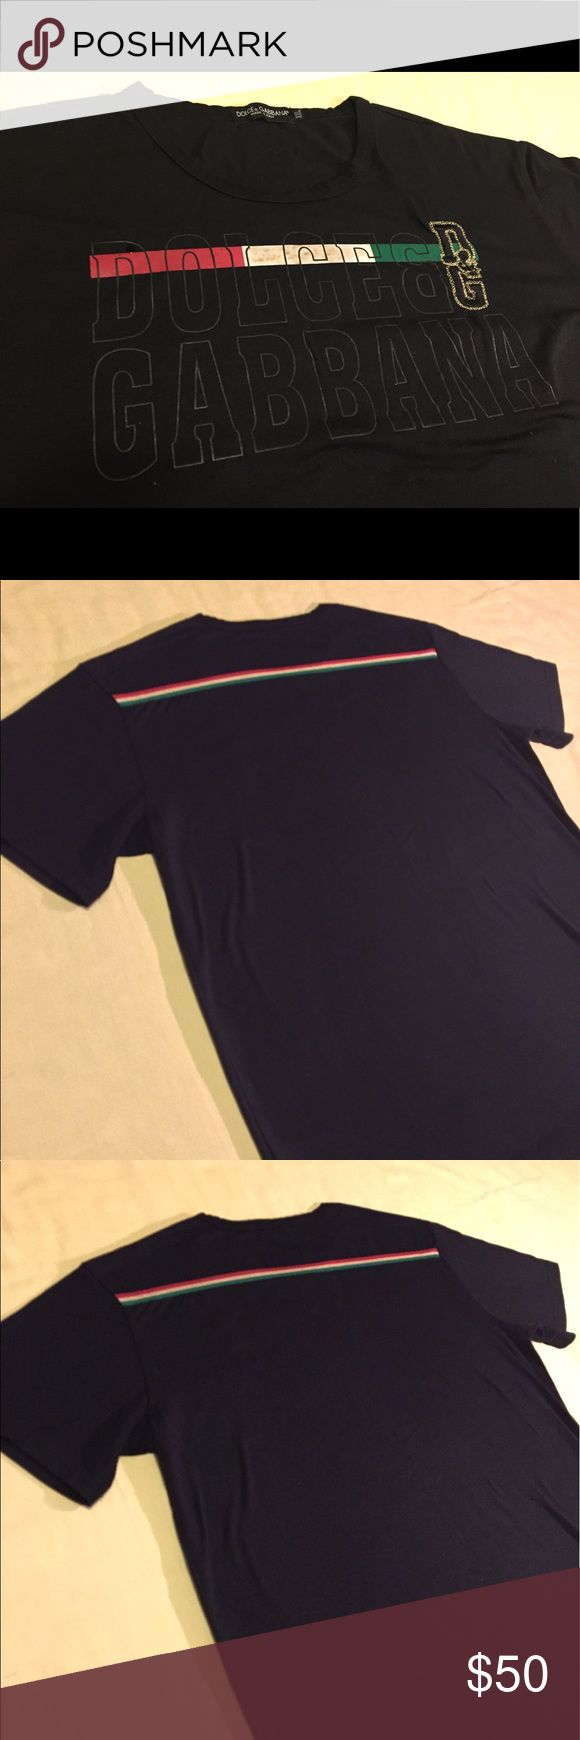 Dolce and Gabbana Tee shirt Black dolce and gabbana tee shirt in fine condition...no fade or discoloration Dolce & Gabbana Shirts Tees - Short Sleeve